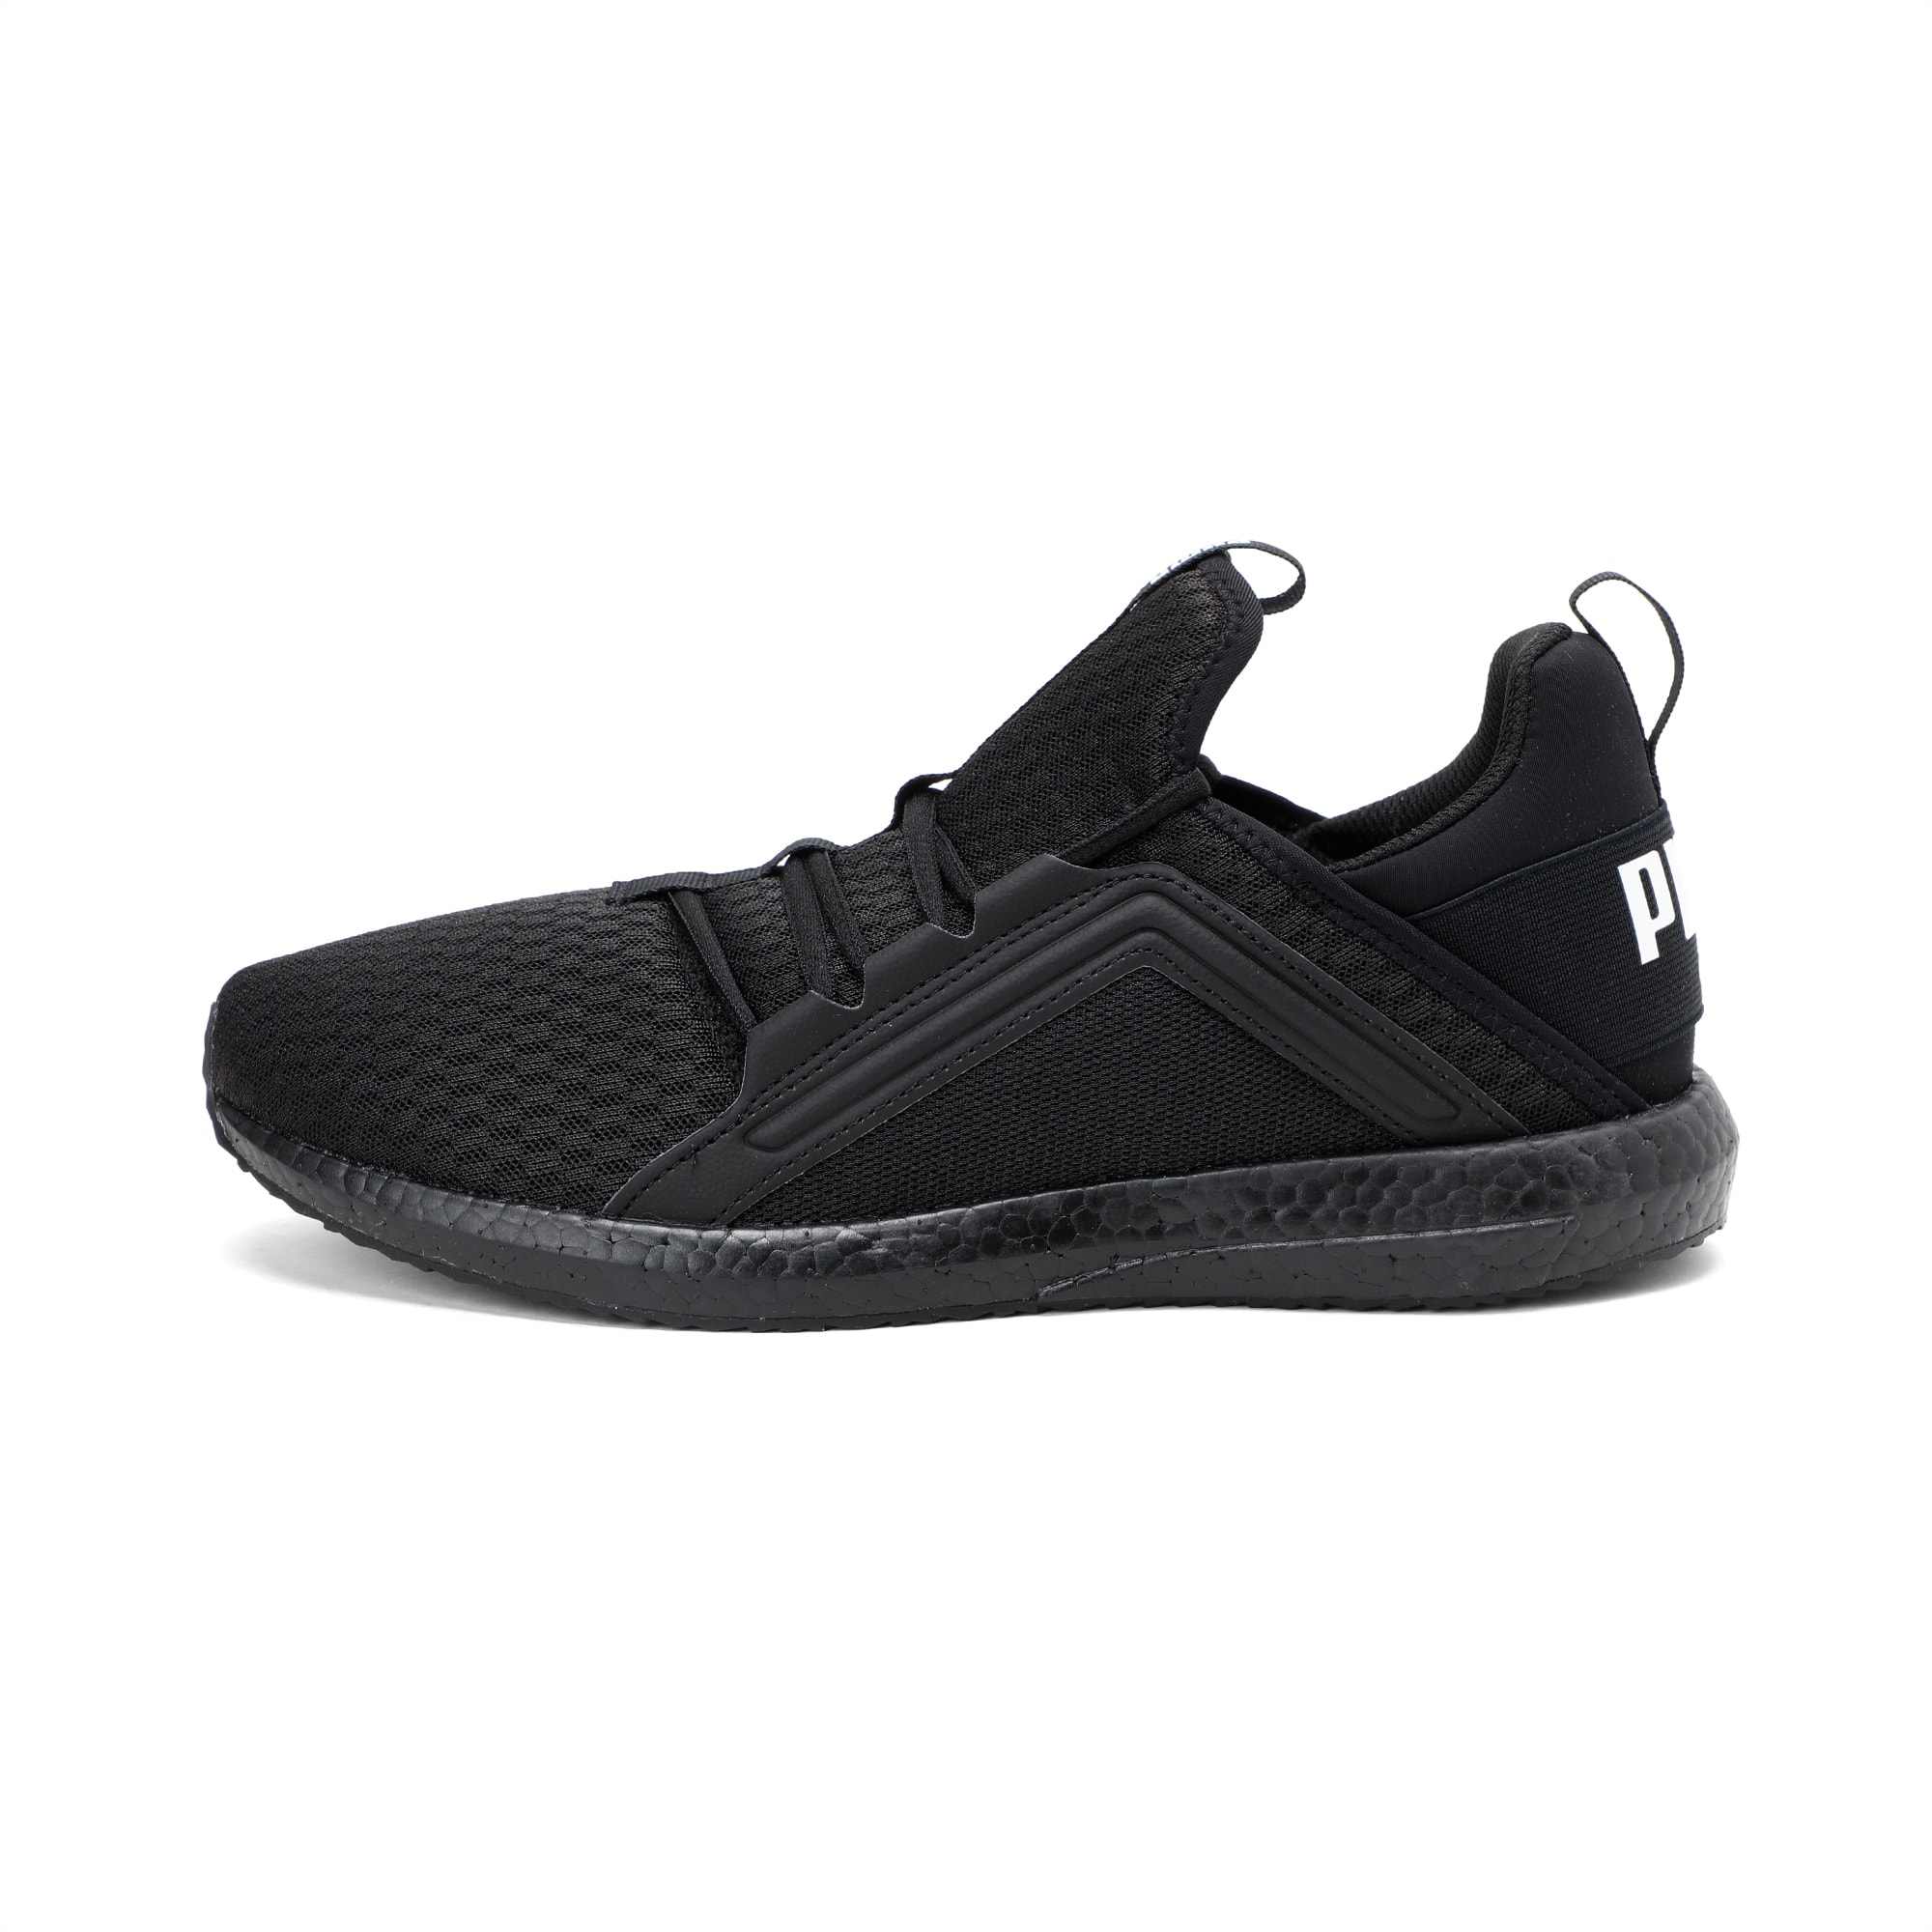 puma nrgy homme, OFF 74%,Cheap price !